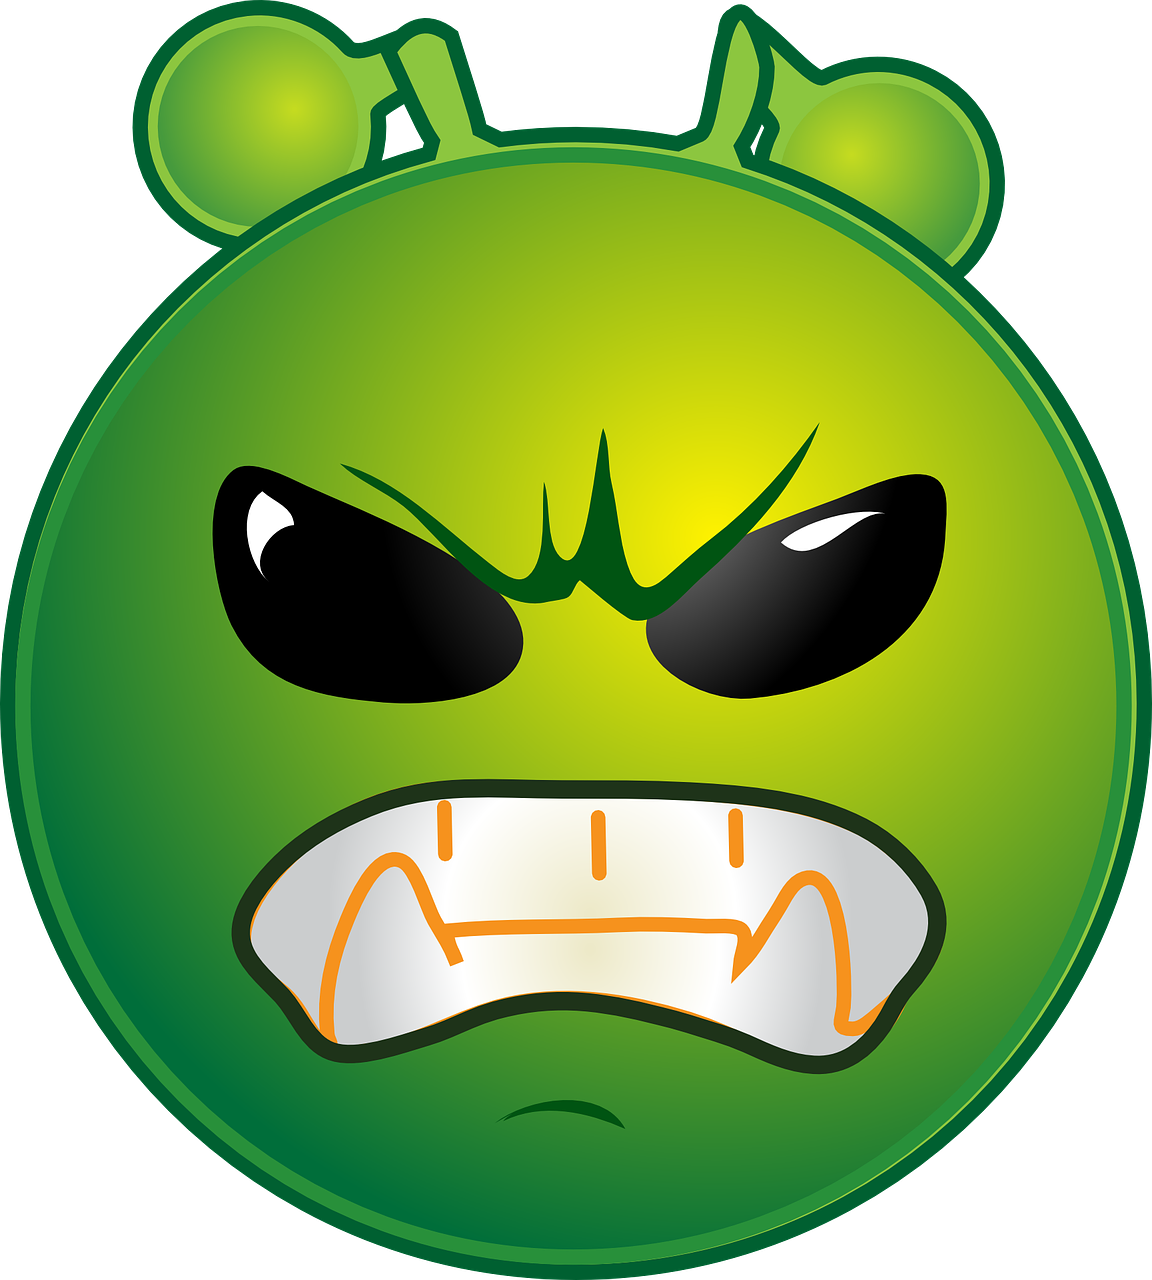 Free image on pixabay. Mad clipart furious